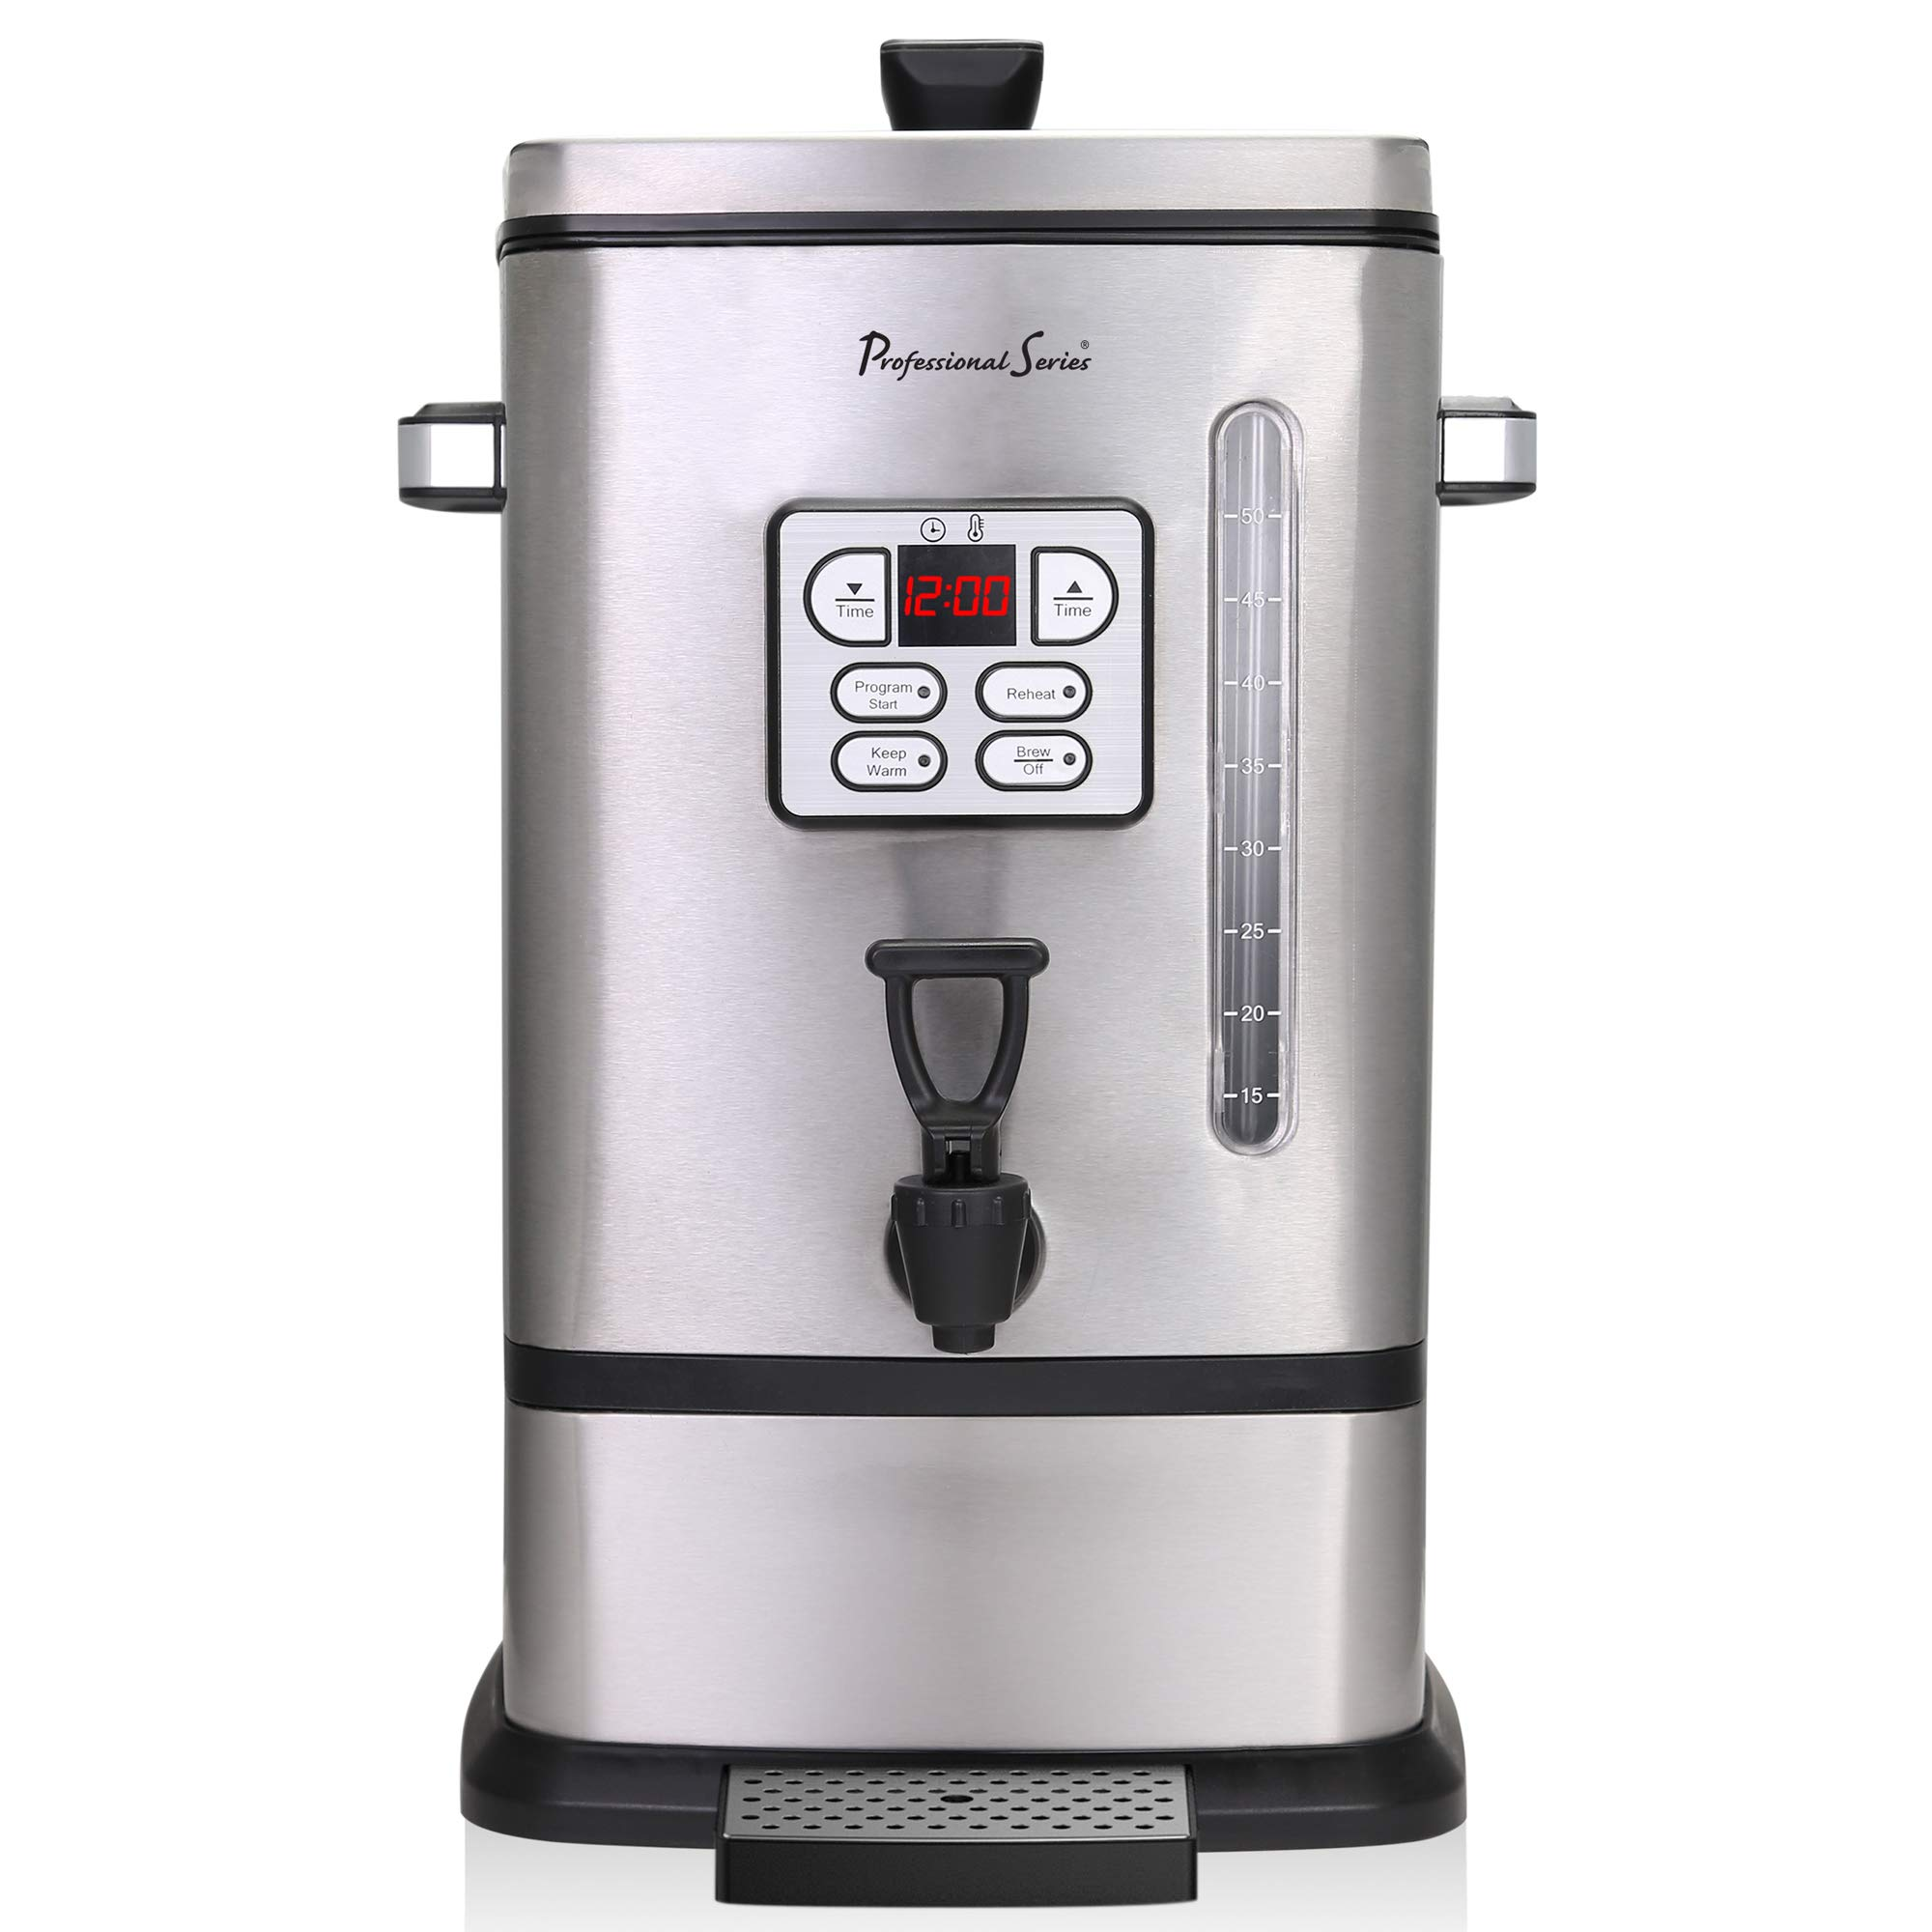 Continental Electric PS-SQ018 Professional Coffee Urn, 50 Cup, Stainless Steel